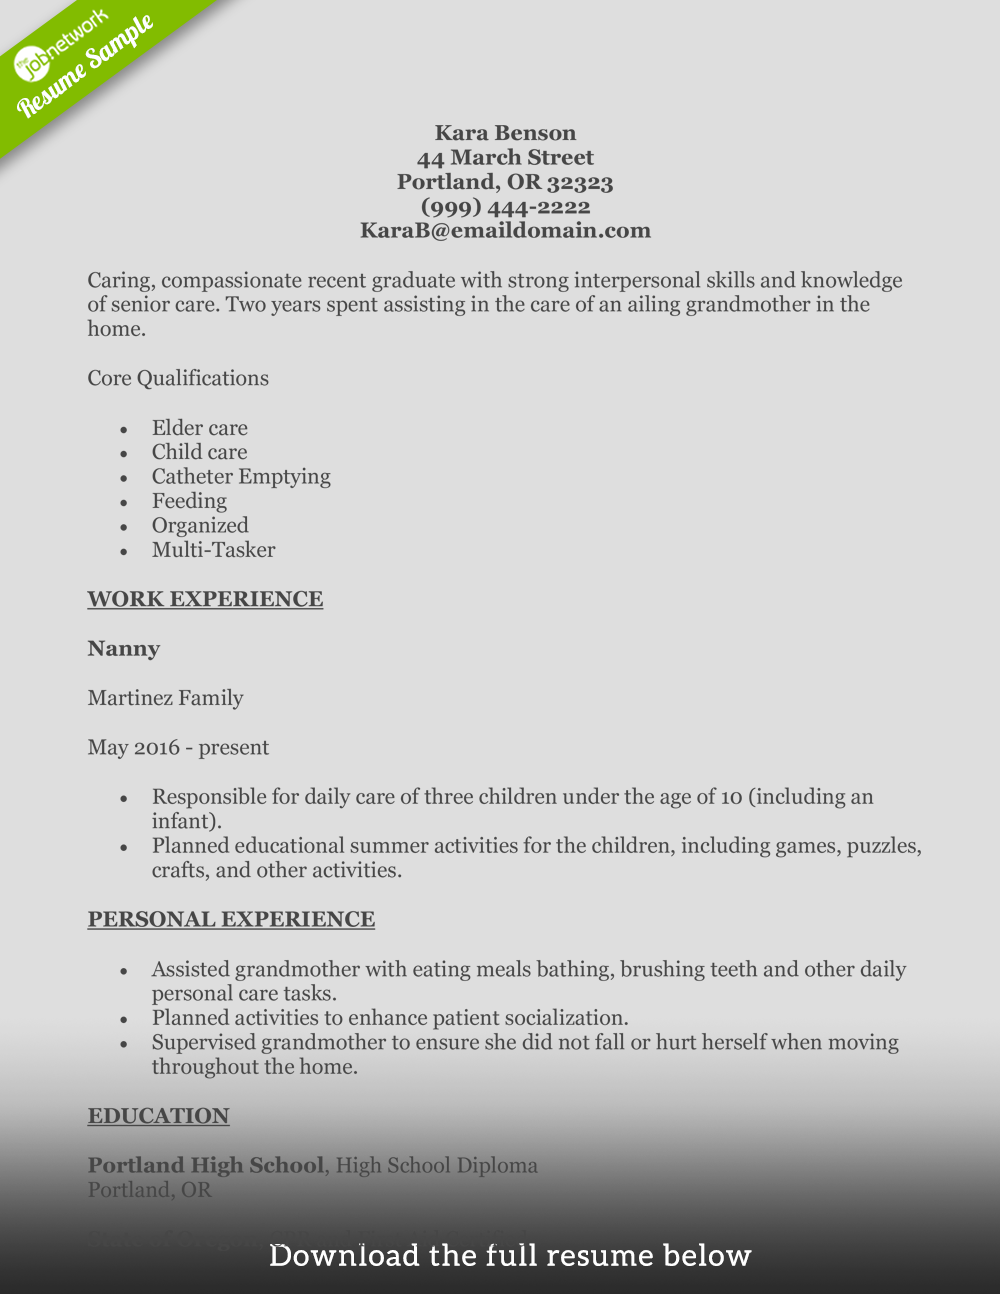 How To Write A Perfect Home Health Aide Resume (examples Included).  Homehealthaideresumeentrylevel  Resum Examples